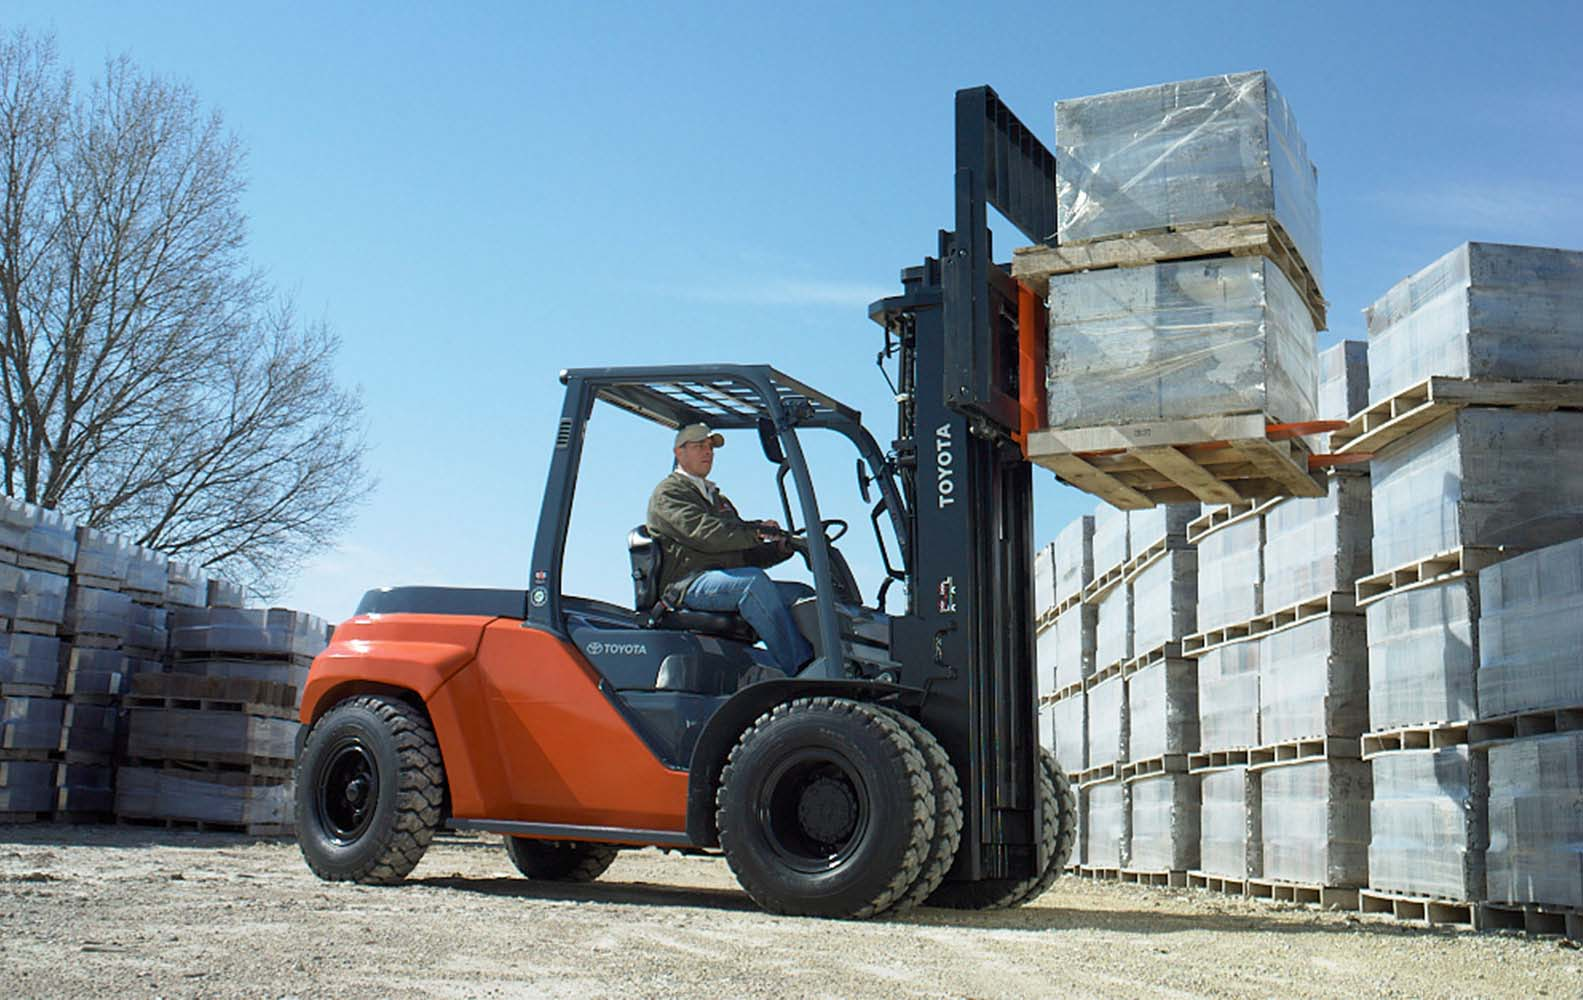 3 Reasons Your Forklift May Be Overheating | Toyota Forklifts